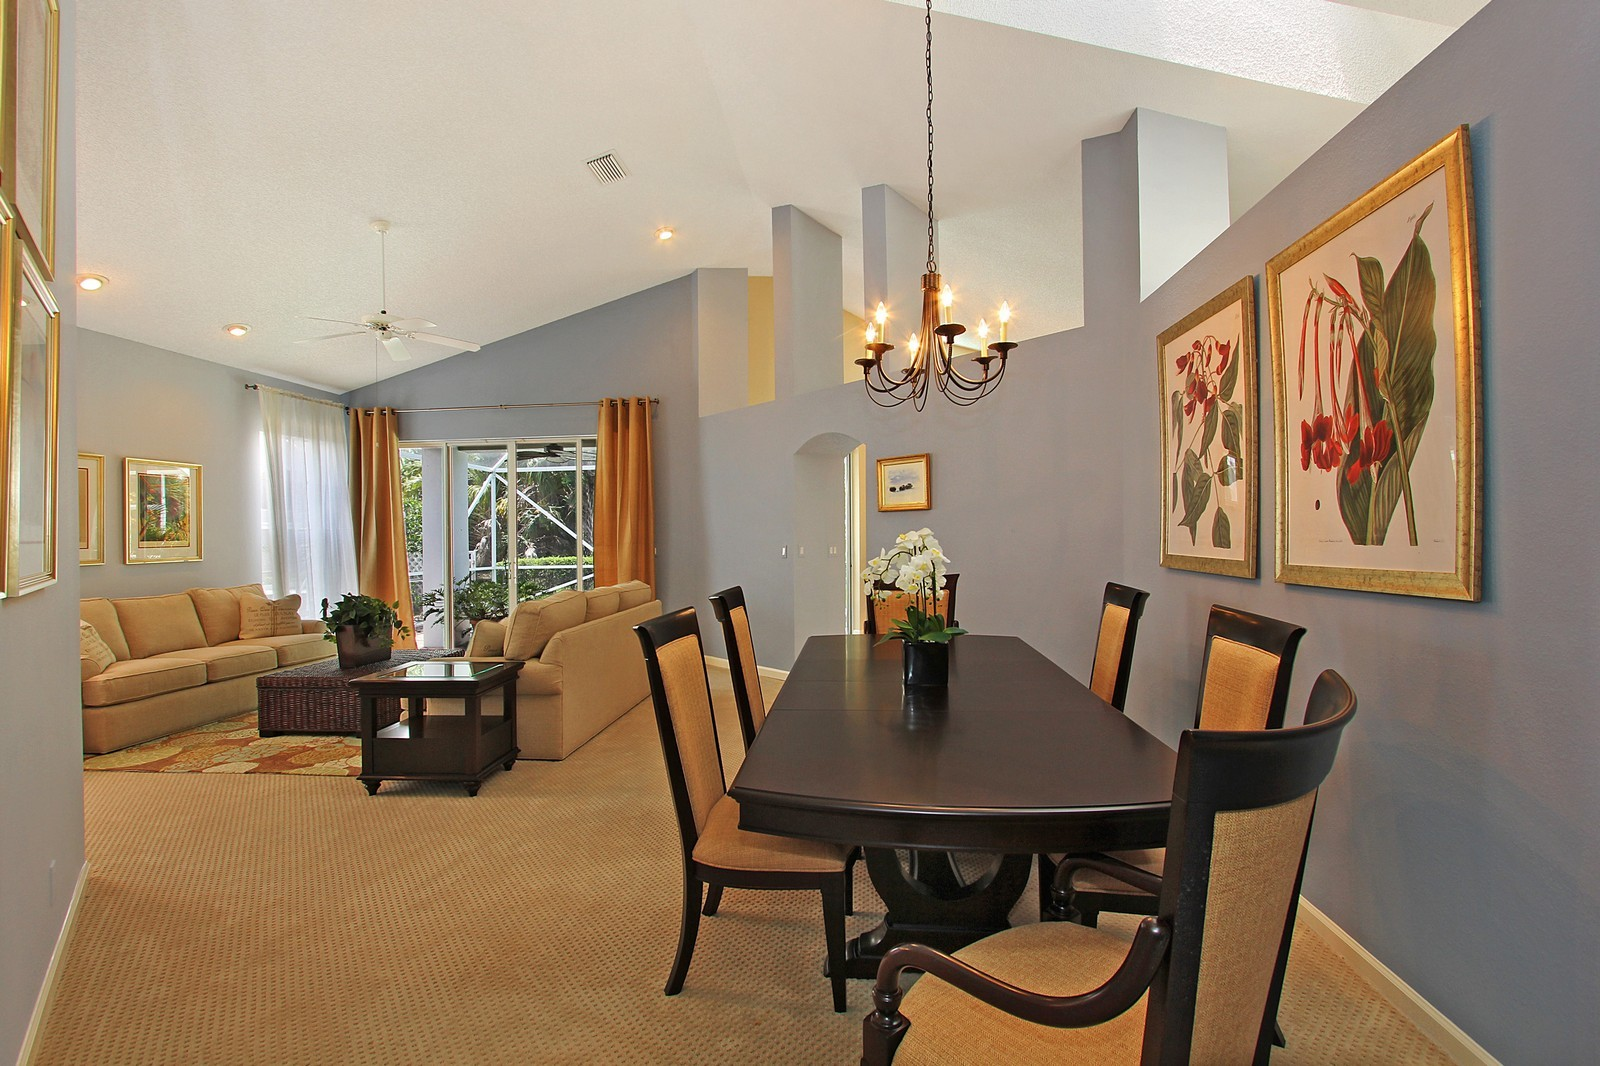 Real Estate Photography - 9107 BAYBURY Lane, West Palm Beach, FL, 33411 - Living Room / Dining Room